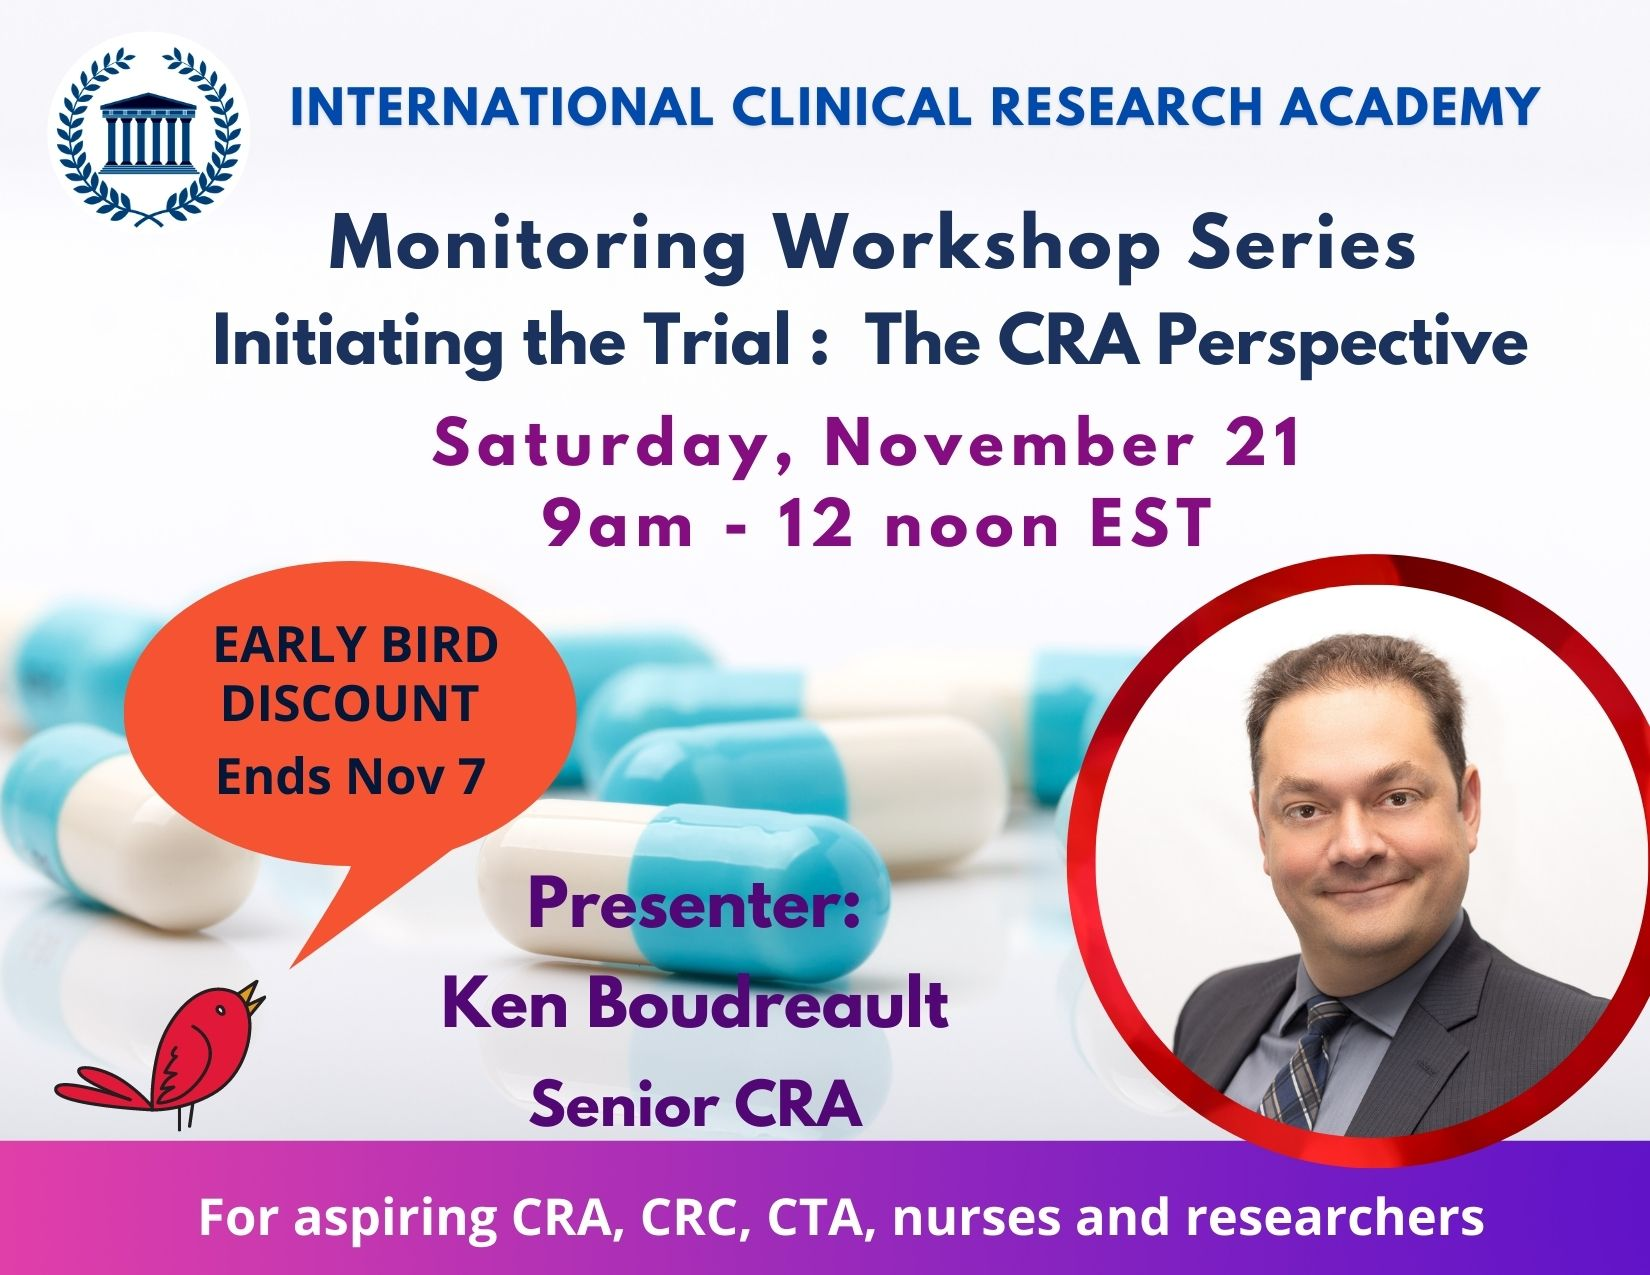 LIVE Workshop on the Study Initiation